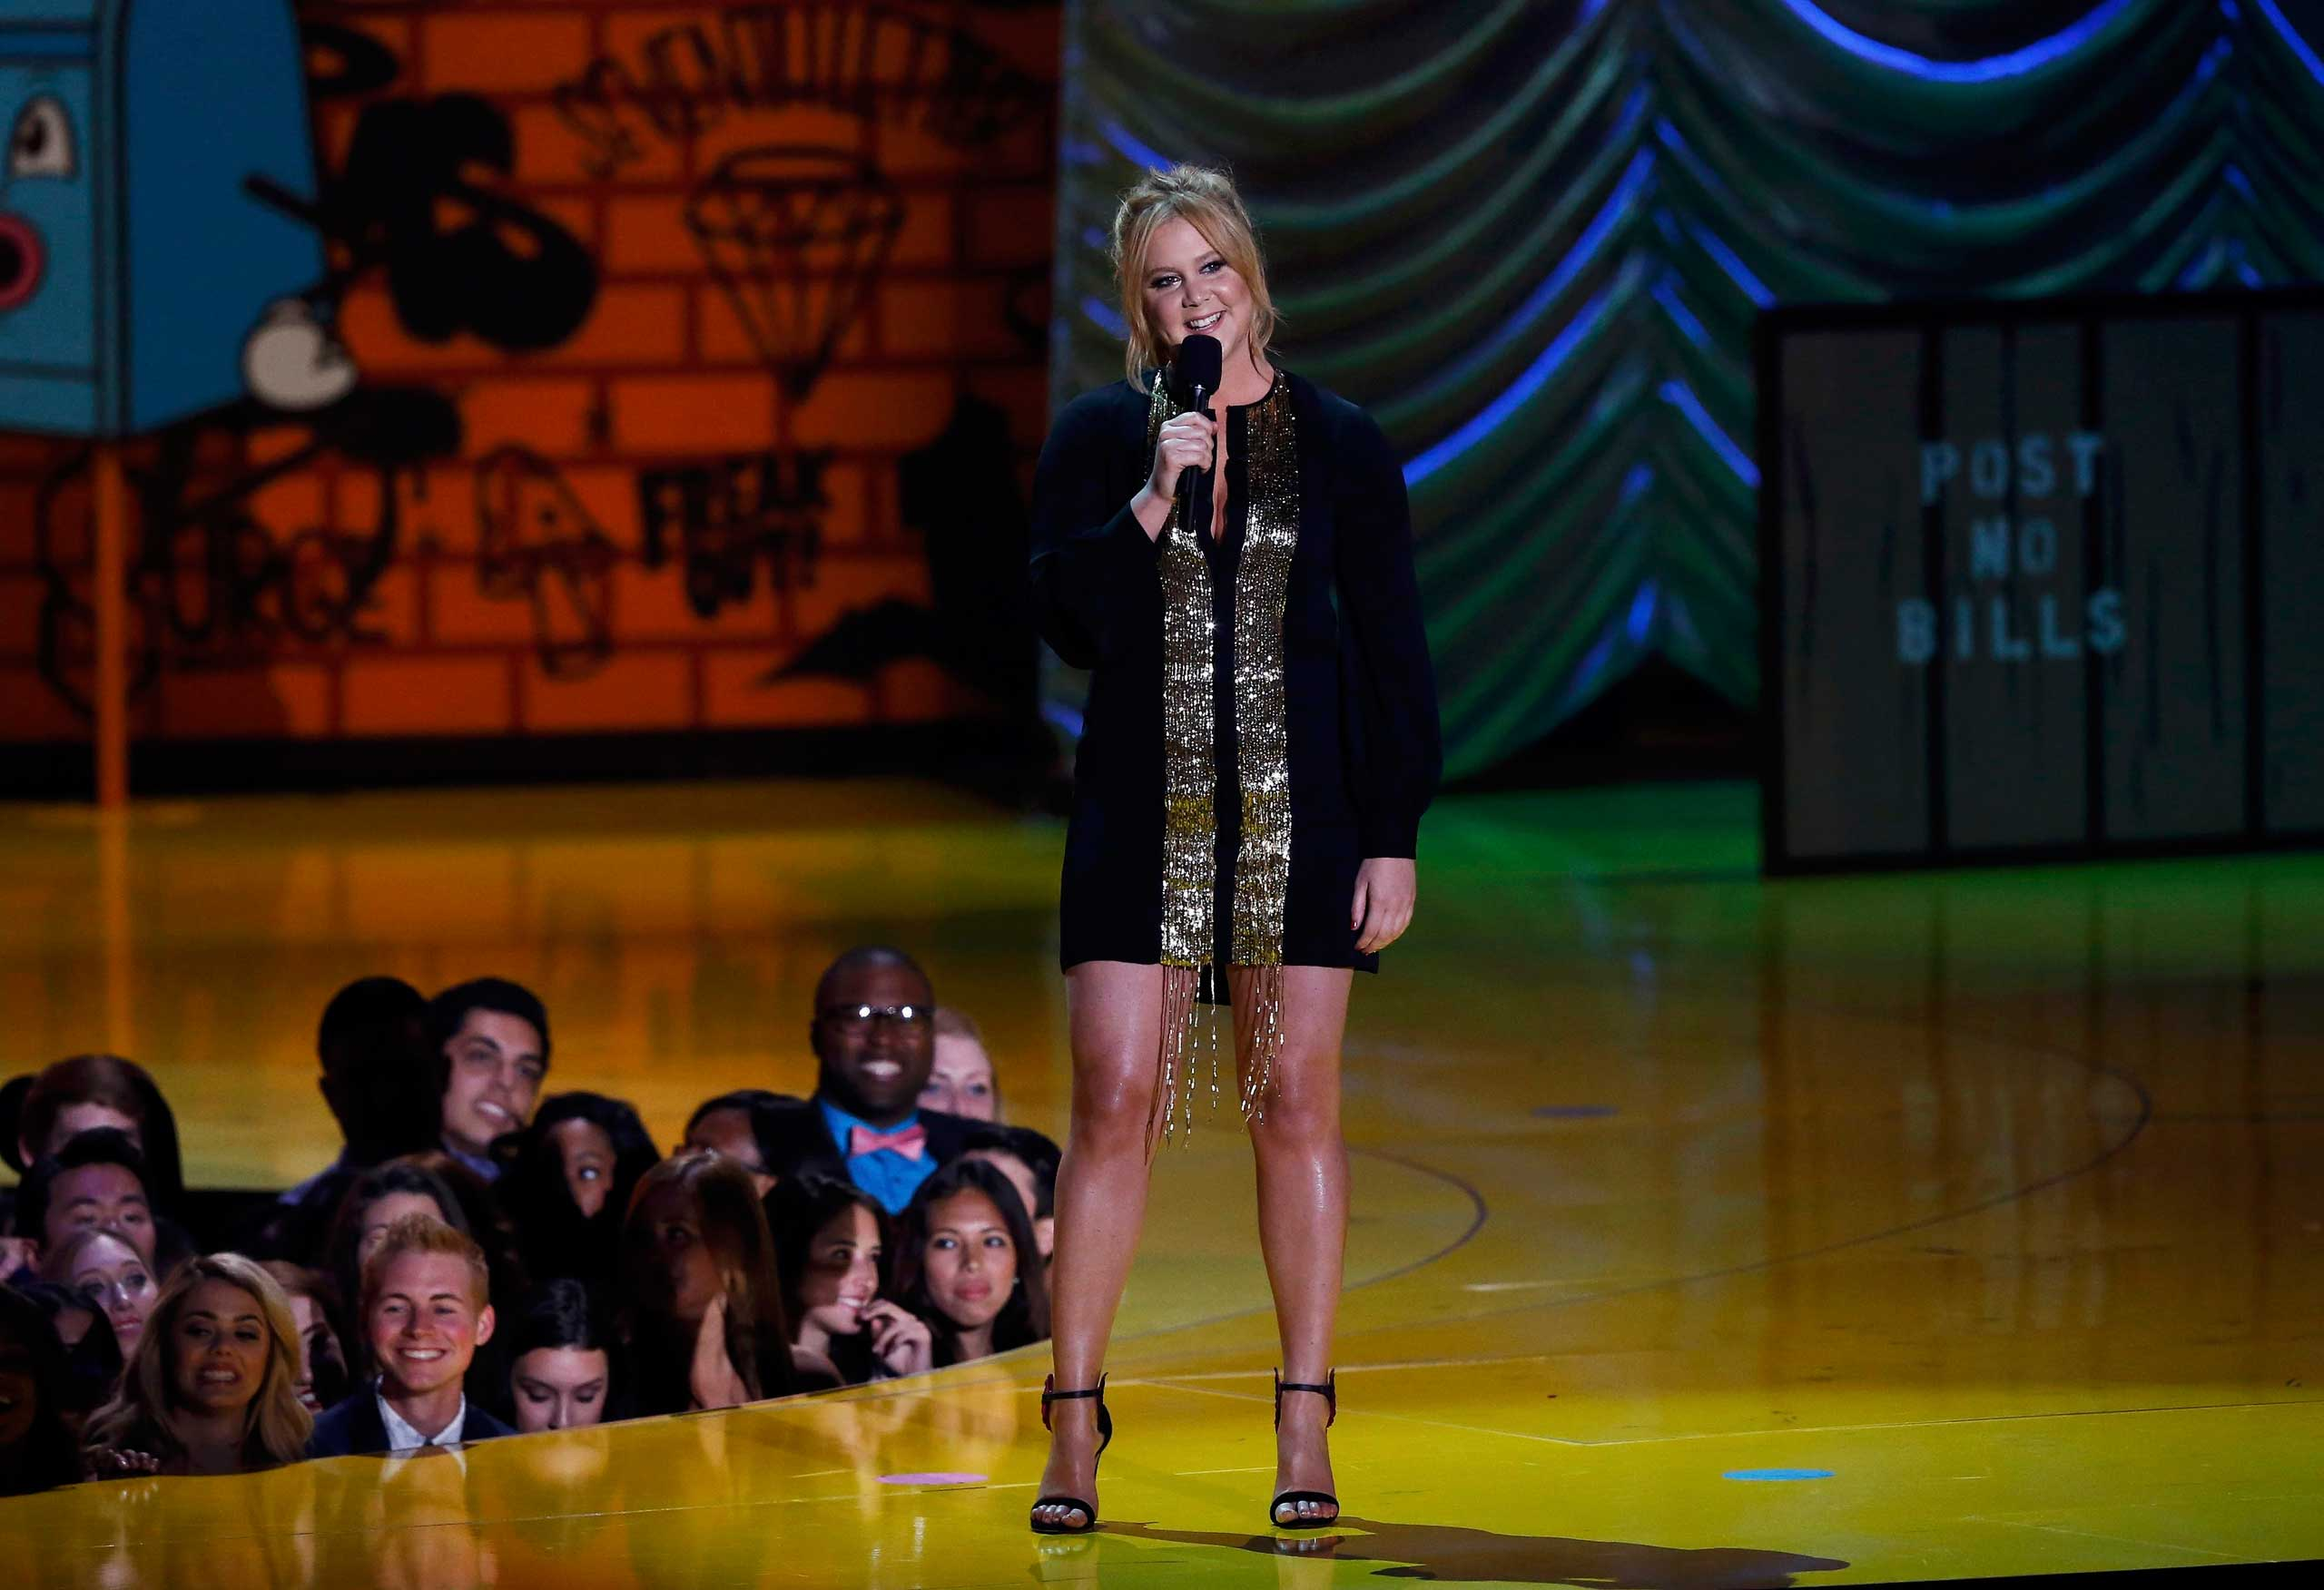 Host Amy Schumer opens the show at the 2015 MTV Movie Awards in Los Angeles on Apr. 12, 2015.